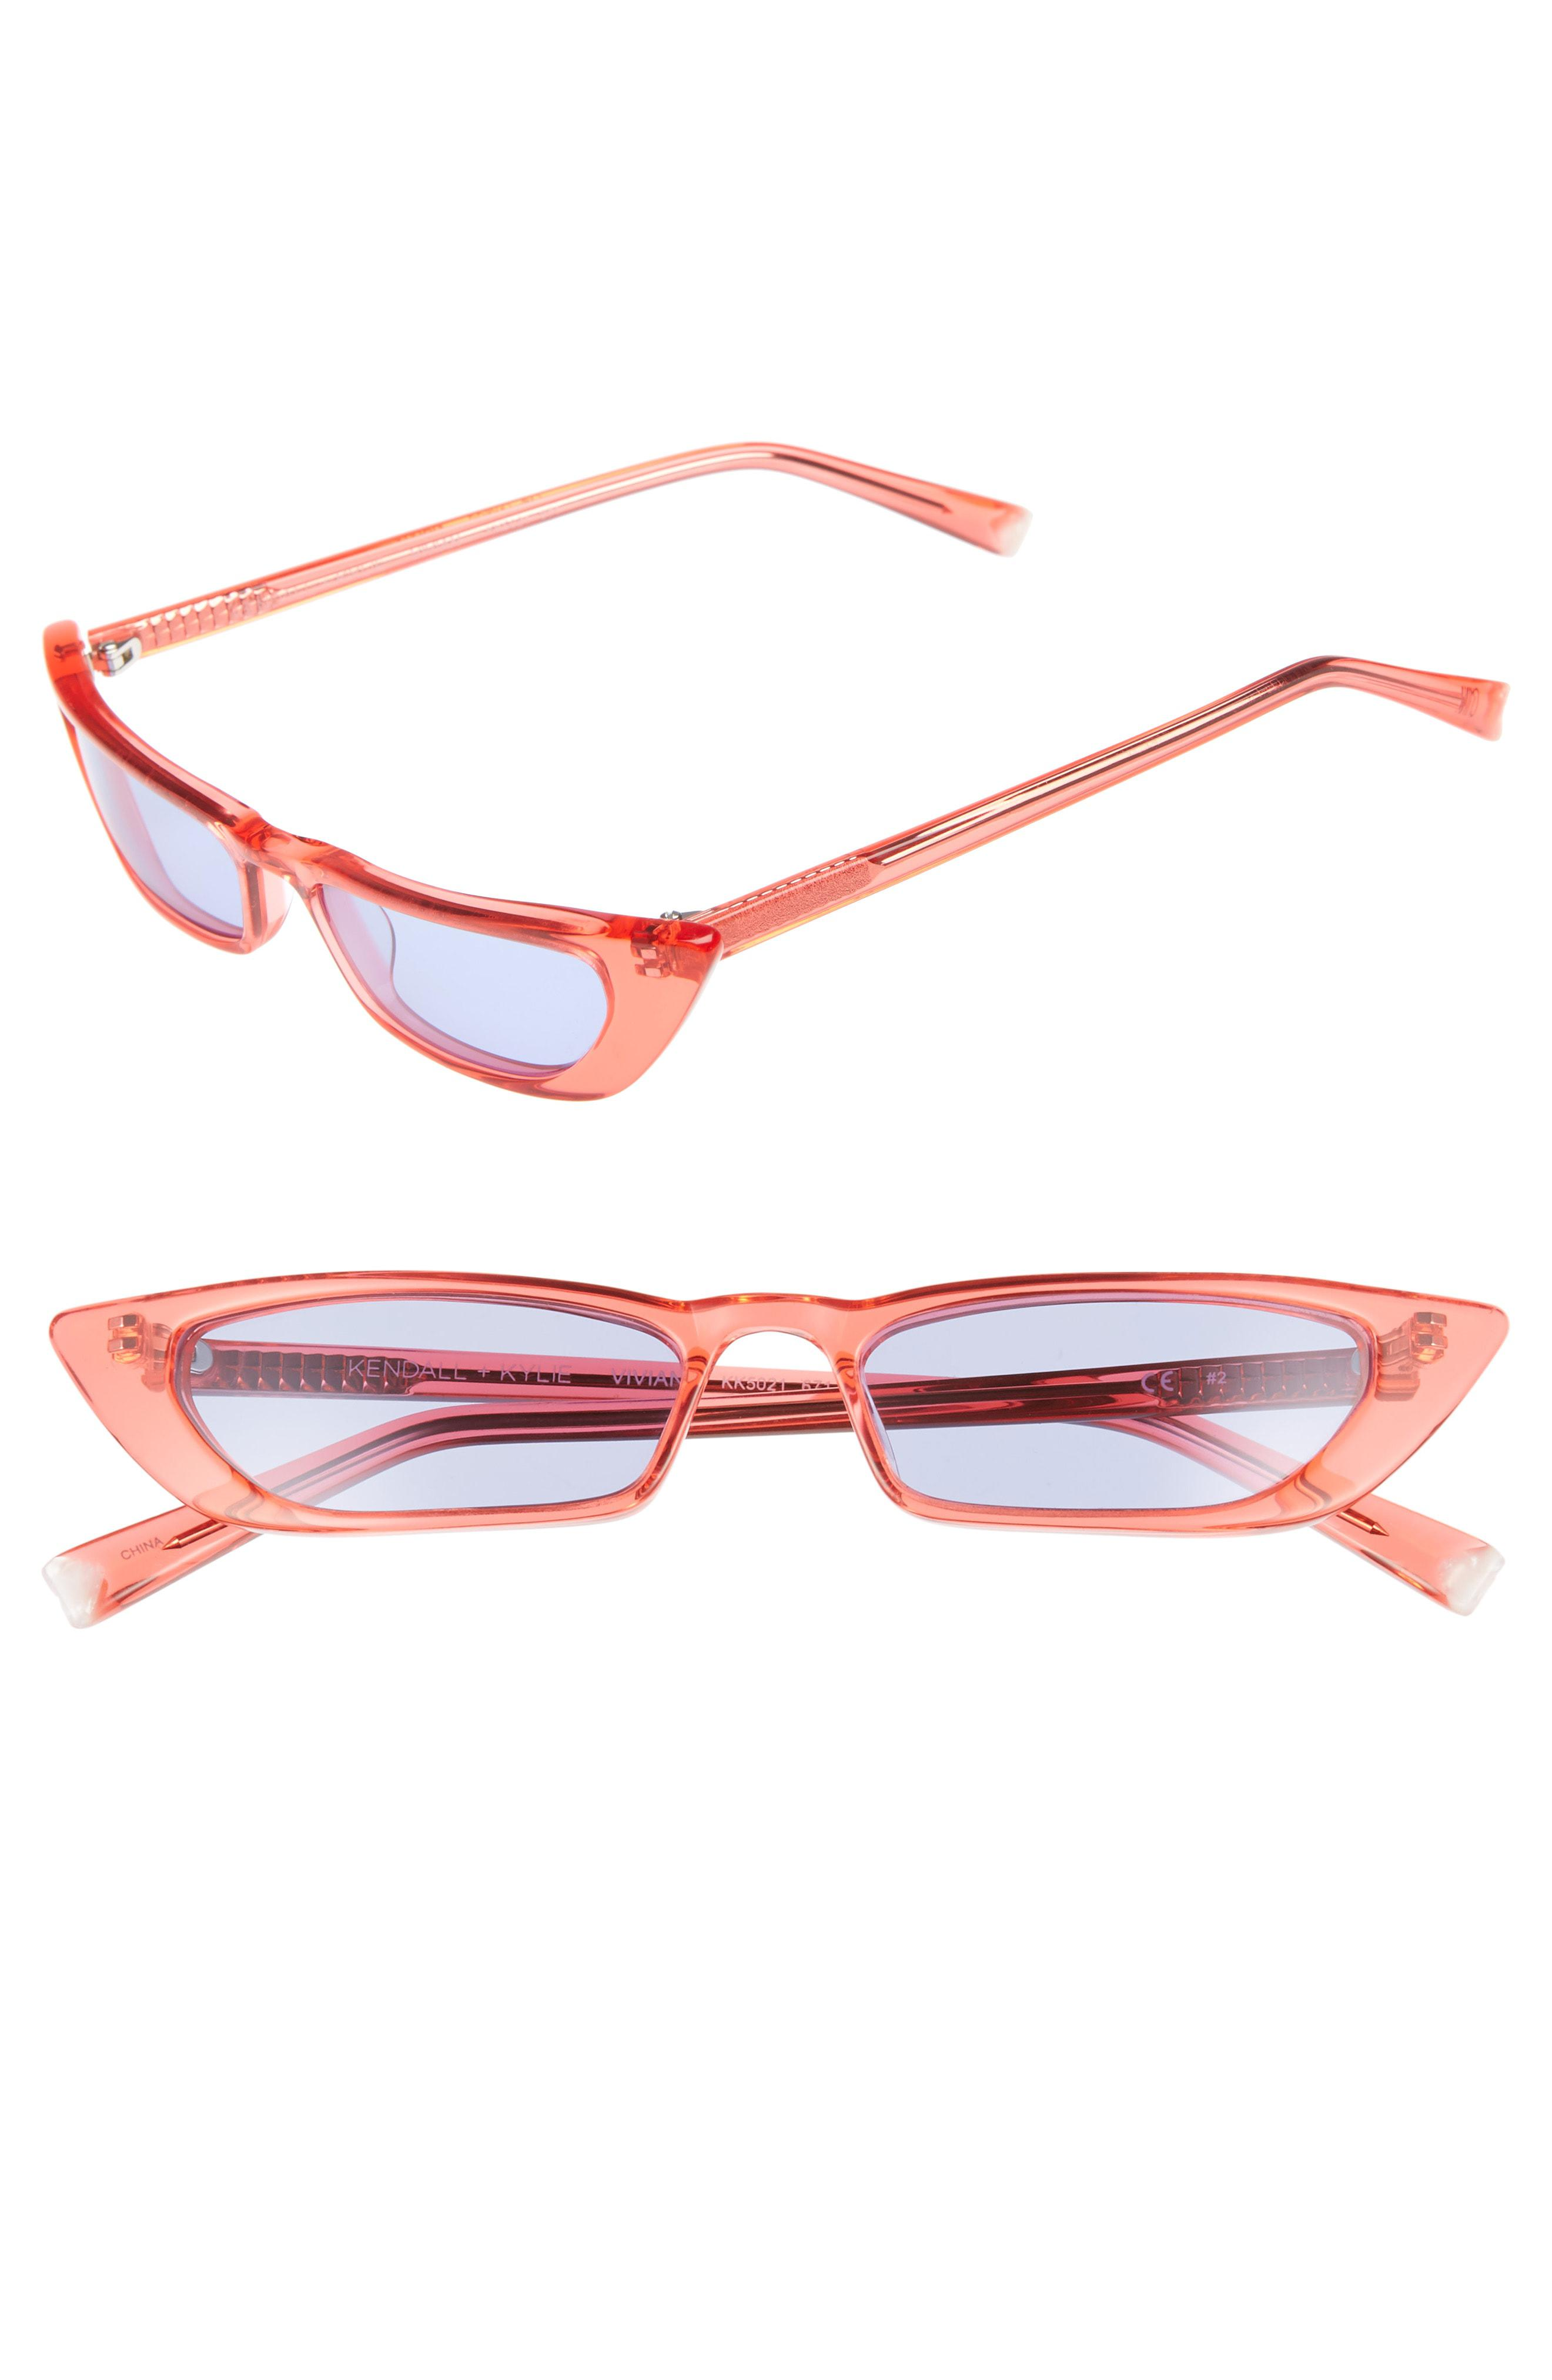 ca9da06be11 Kendall + Kylie. Women s Vivian 51mm Extreme Cat Eye Sunglasses -